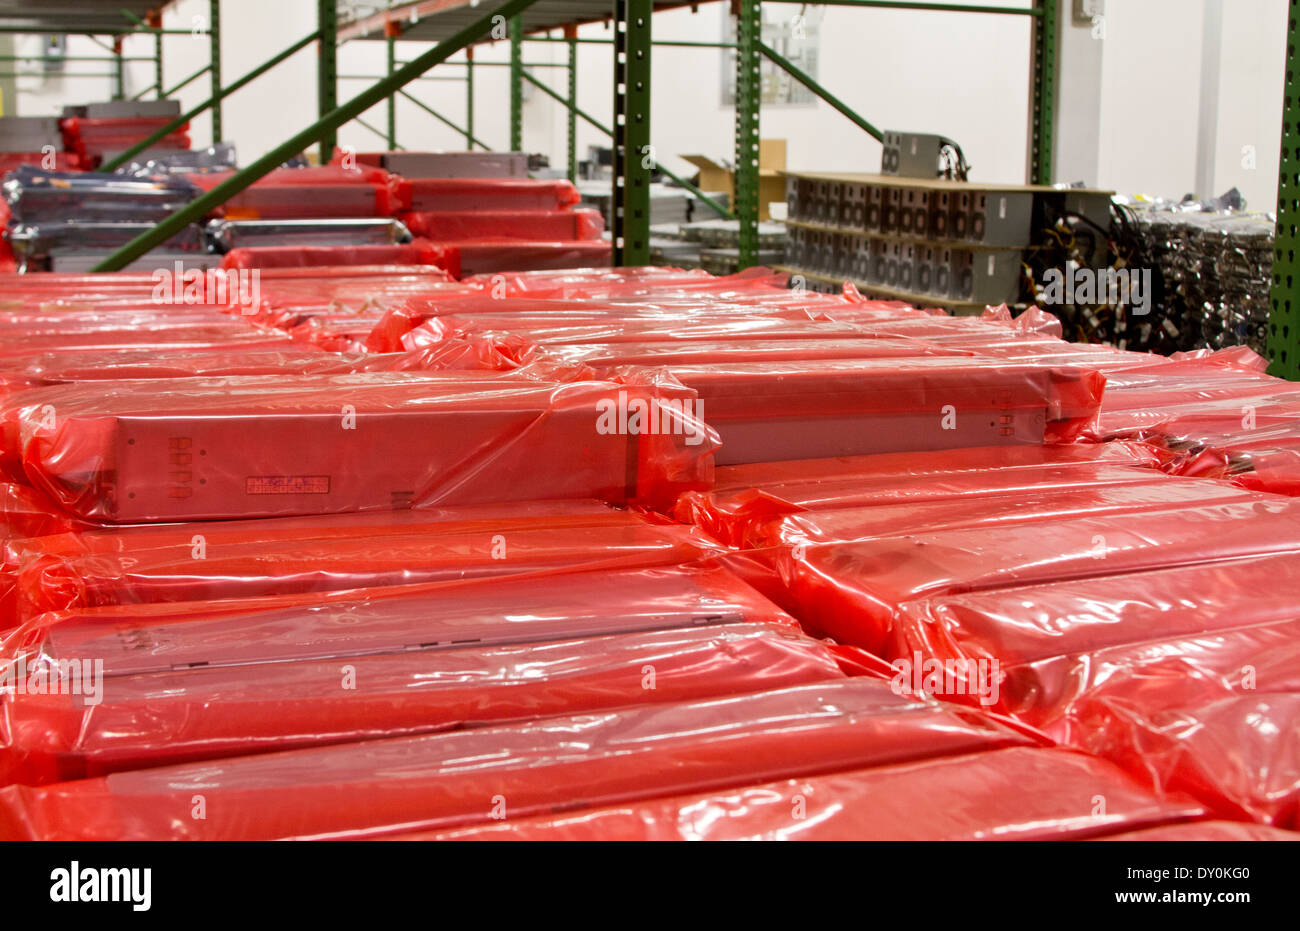 computer technology warehouse stock - Stock Image